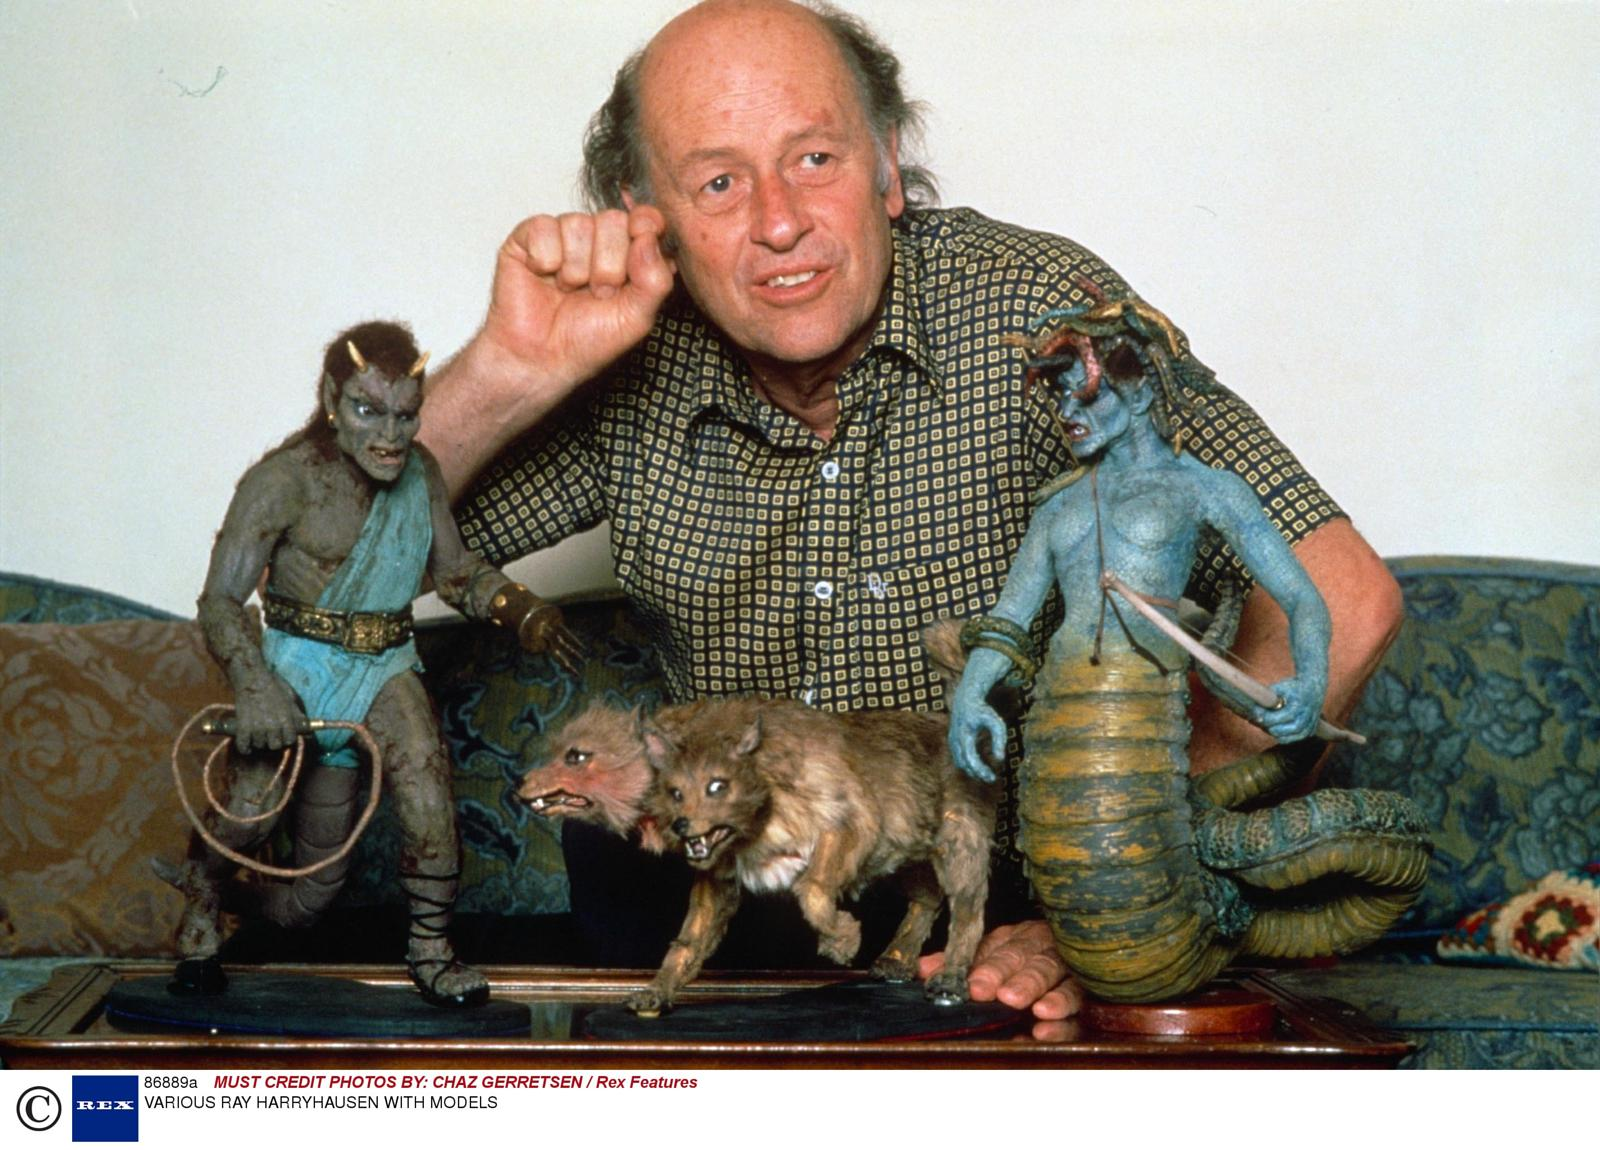 ray harryhausen king midasray harryhausen wiki, ray harryhausen war of the worlds, ray harryhausen king midas, ray harryhausen movies, ray harryhausen special effects titan, ray harryhausen monsters, ray harryhausen models, ray harryhausen medusa, ray harryhausen youtube, ray harryhausen toys, ray harryhausen the early years collection, ray harryhausen an animated life, ray harryhausen films, ray harryhausen documentary, ray harryhausen museum, ray harryhausen jason and the argonauts, ray harryhausen auction, ray harryhausen imdb, ray harryhausen foundation, ray harryhausen figures